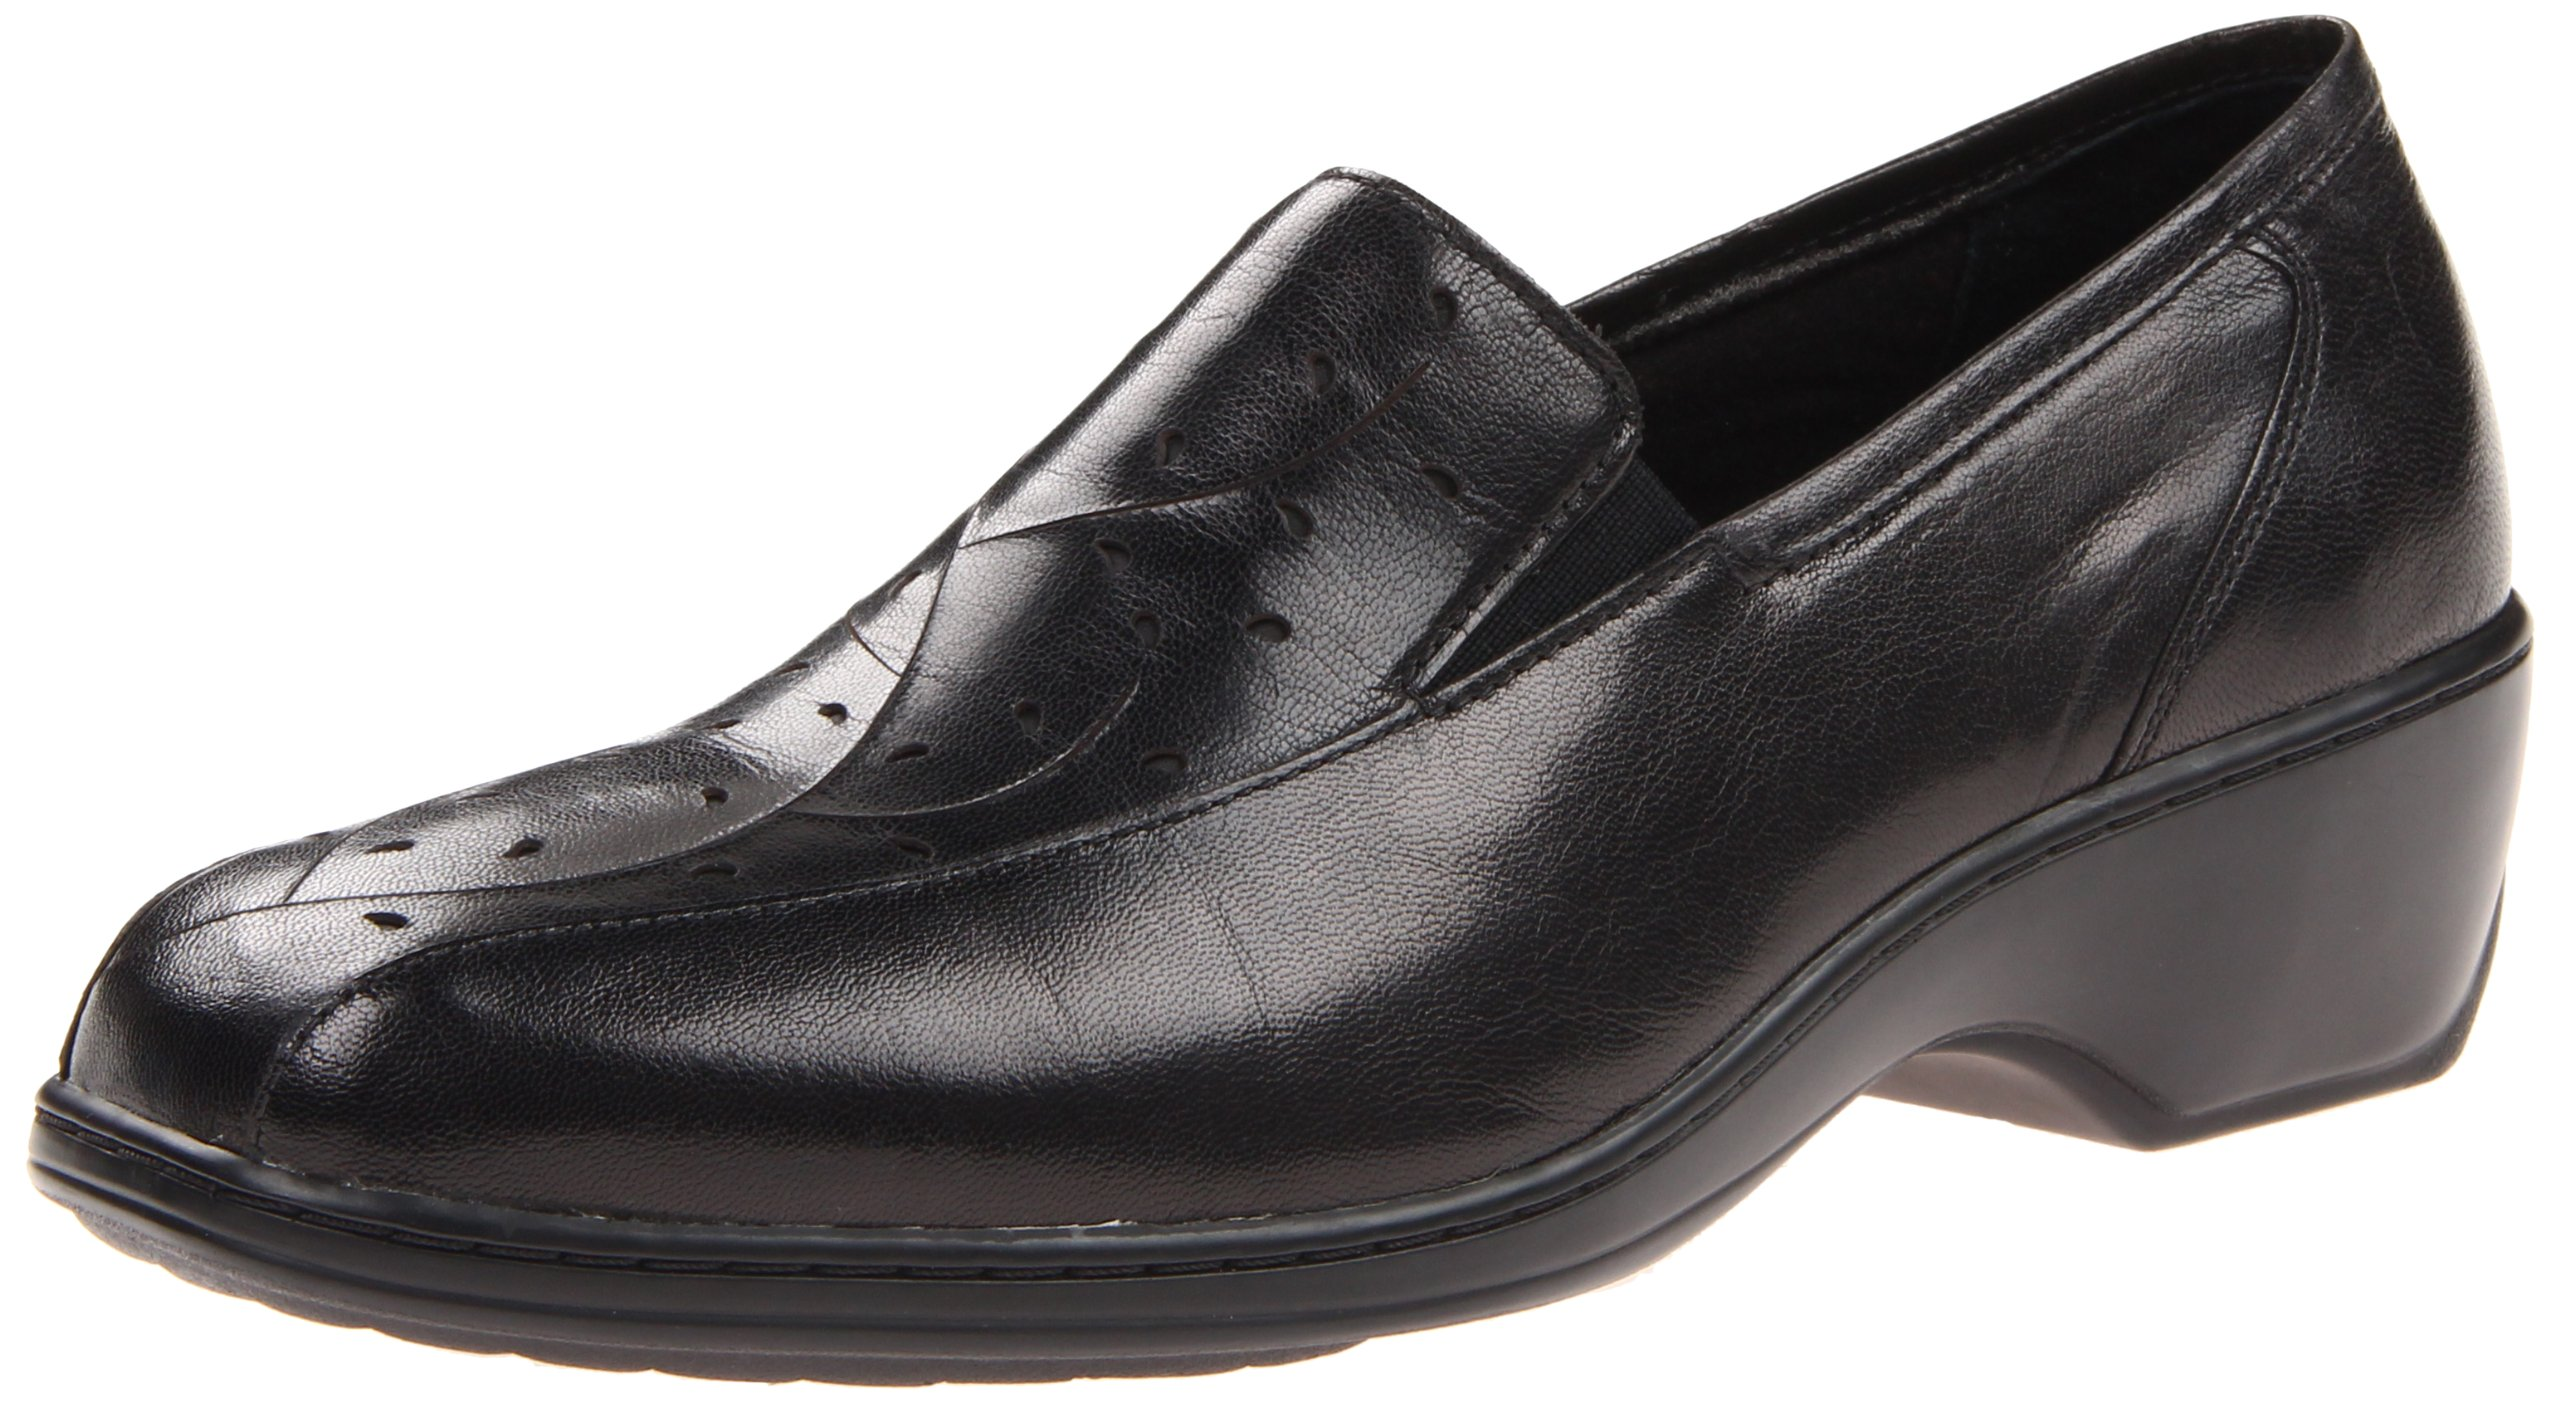 Aravon Women's Kiley Flat, Black, 7 B US